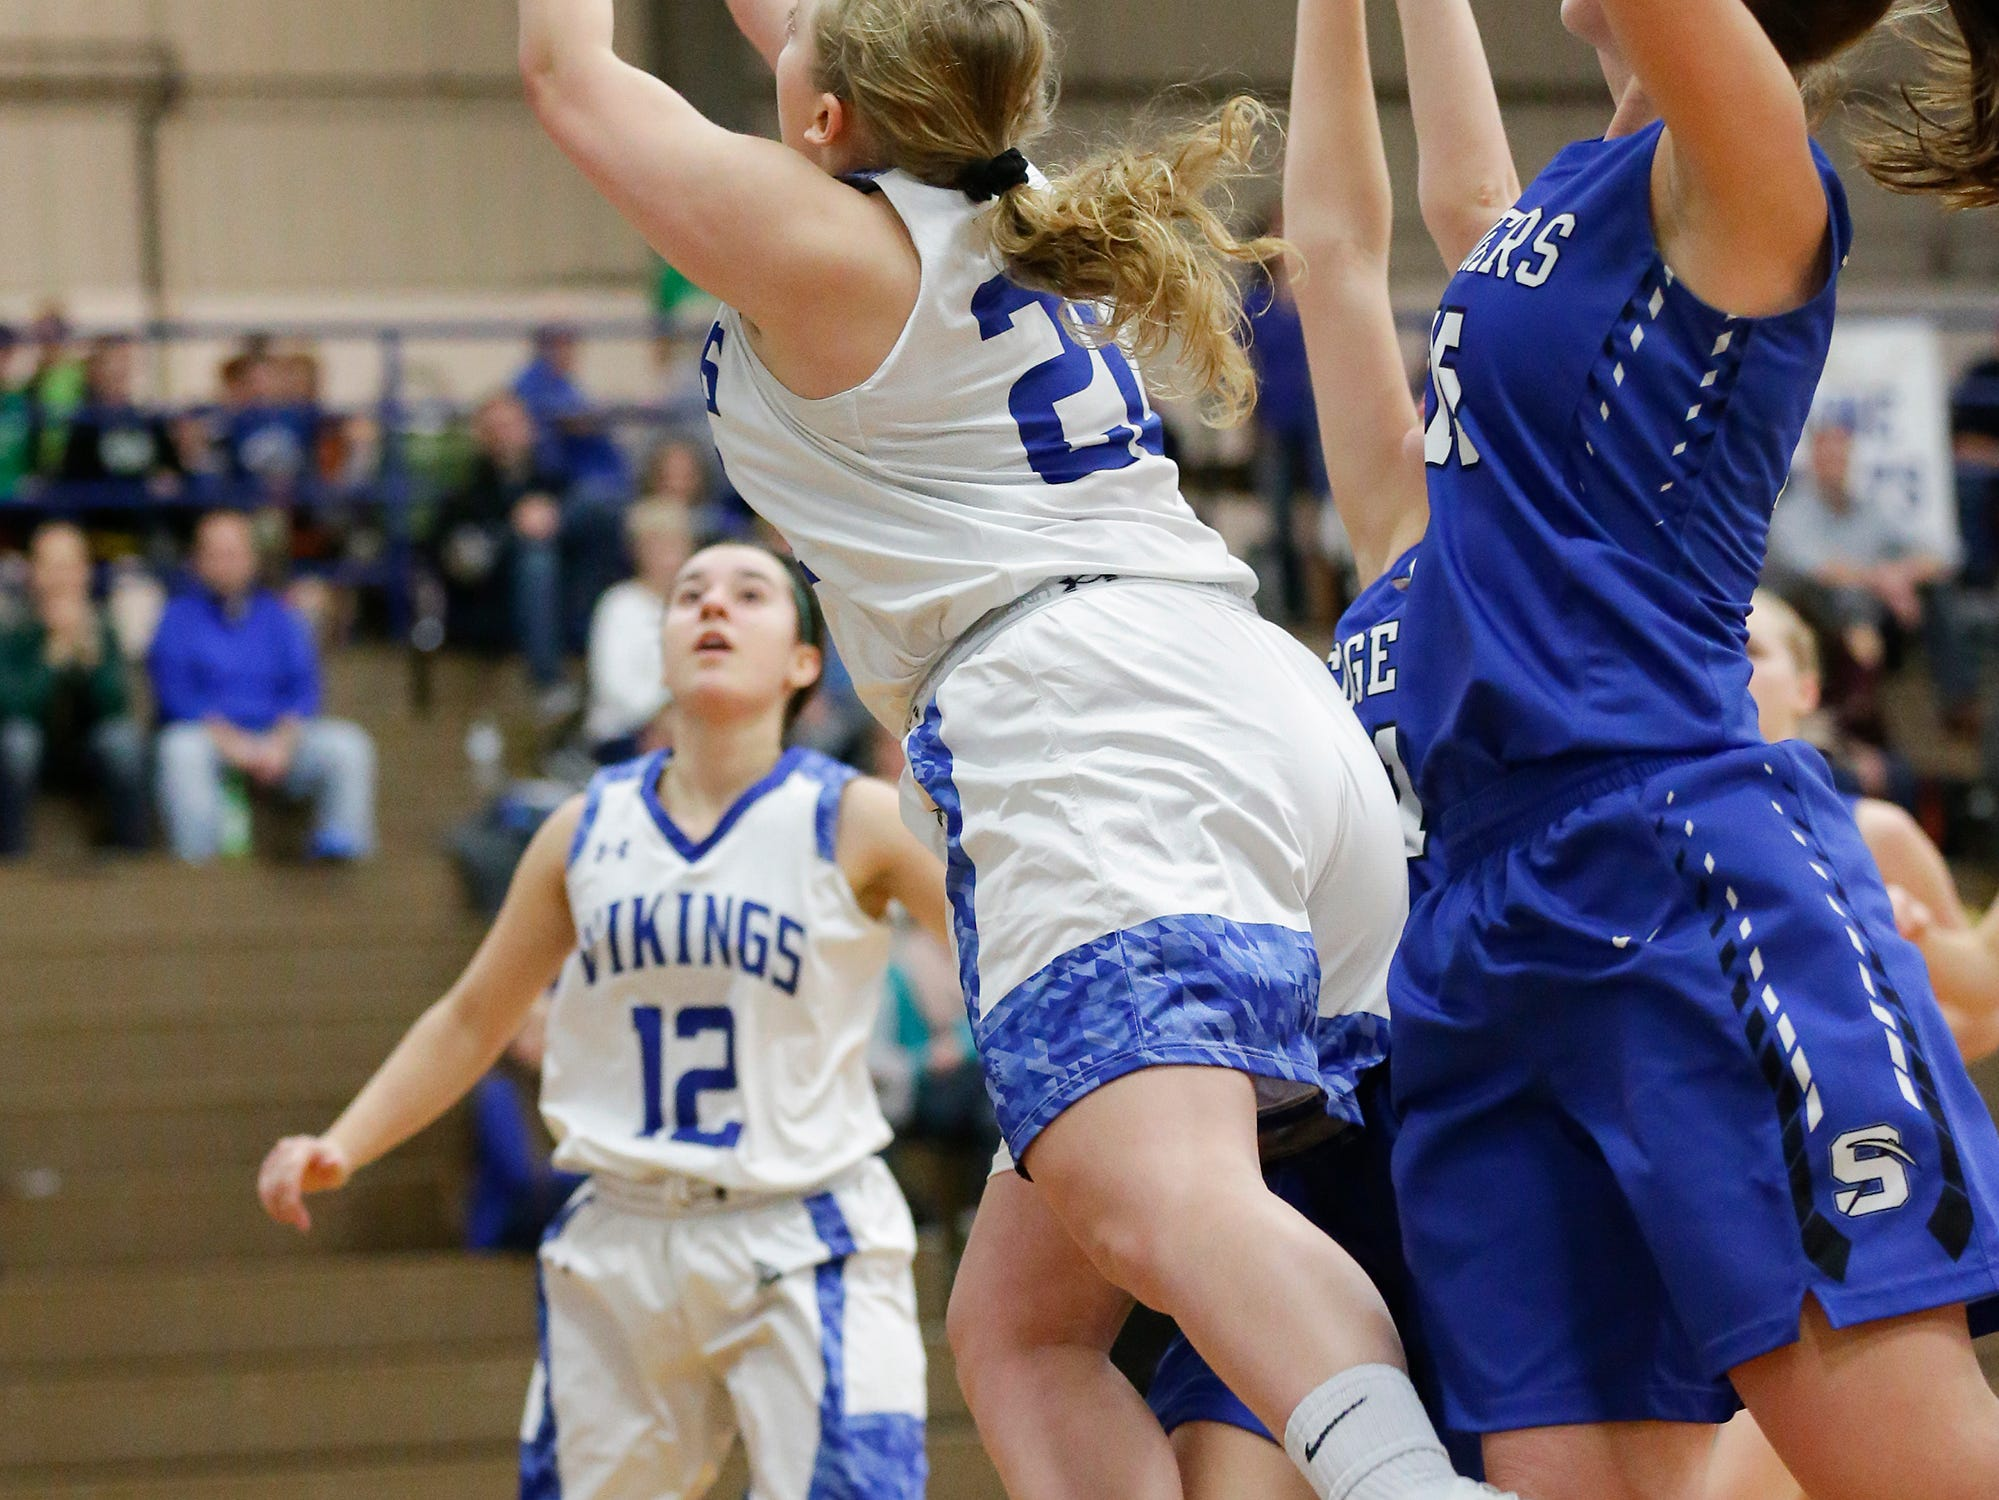 Winnebago Lutheran Academy girls basketball's Rebecca Honaker gets tripped up as she makes an attempt at a basket against St. Mary's Springs Academy during their game Tuesday, February 5, 2019 in Fond du Lac, Wisconsin. Winnebago Lutheran won the game 44-35. Doug Raflik/USA TODAY NETWORK-Wisconsin